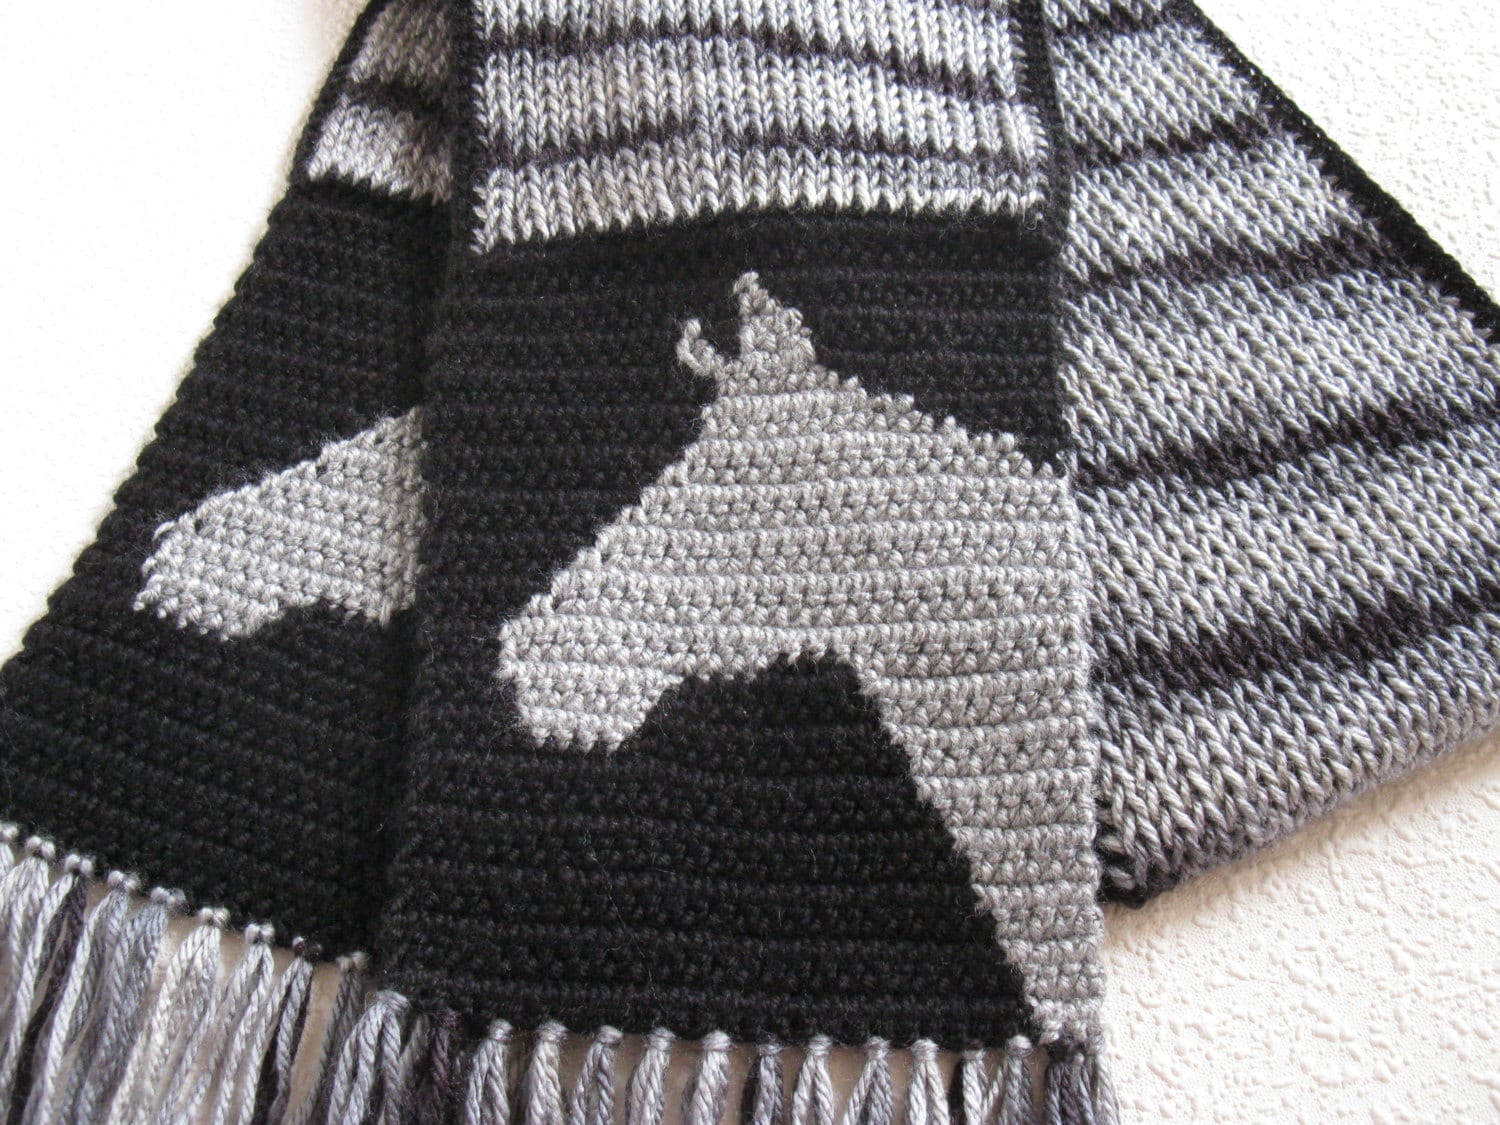 Knitted Horse Scarf. Gray and black striped scarf with horse